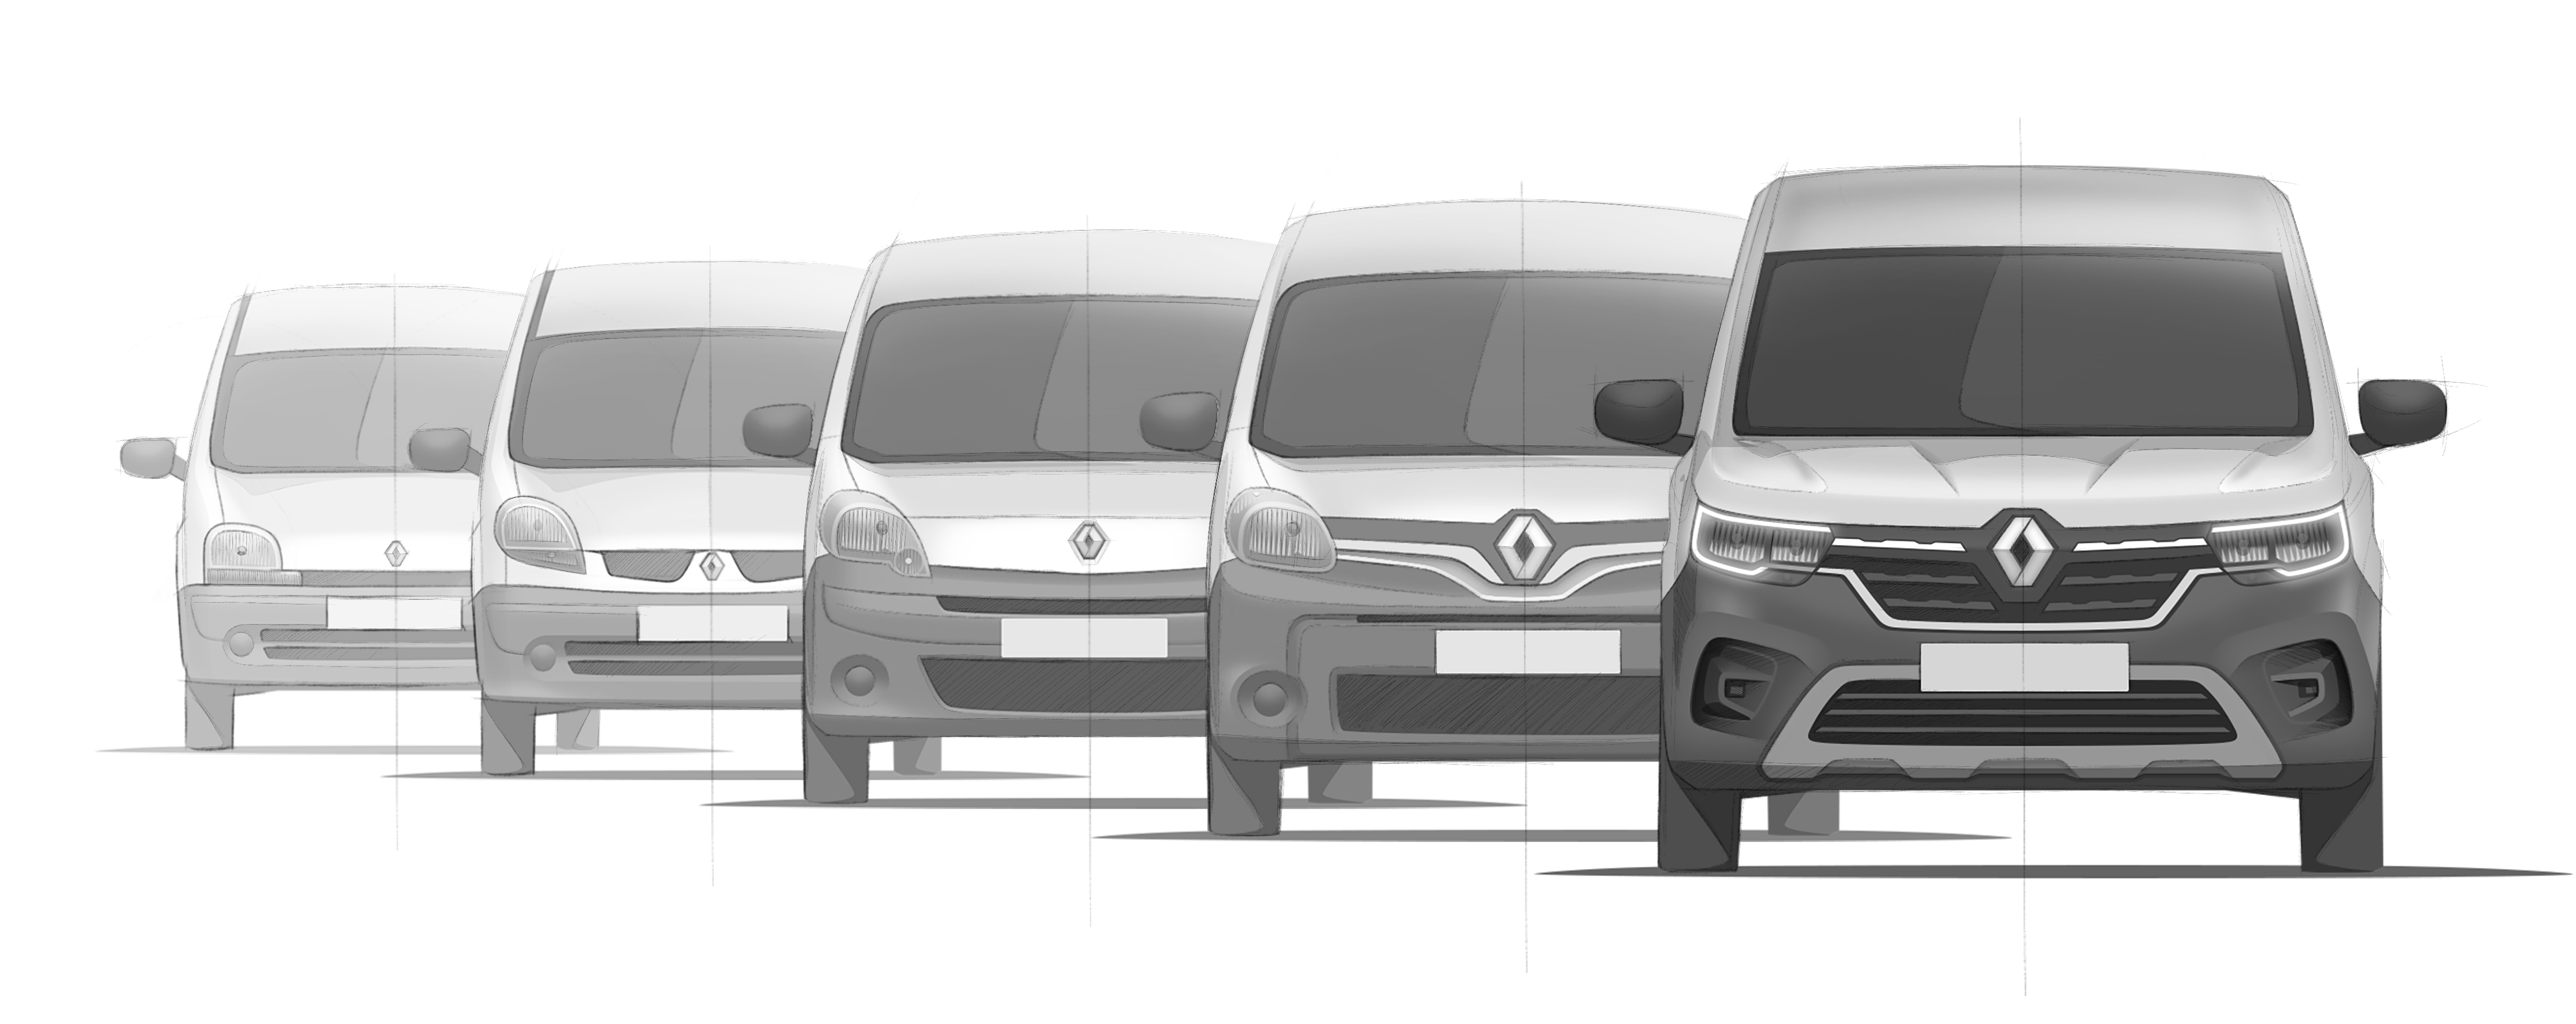 6-2020 - THE CREATION DESIGN OF NEW KANGOO